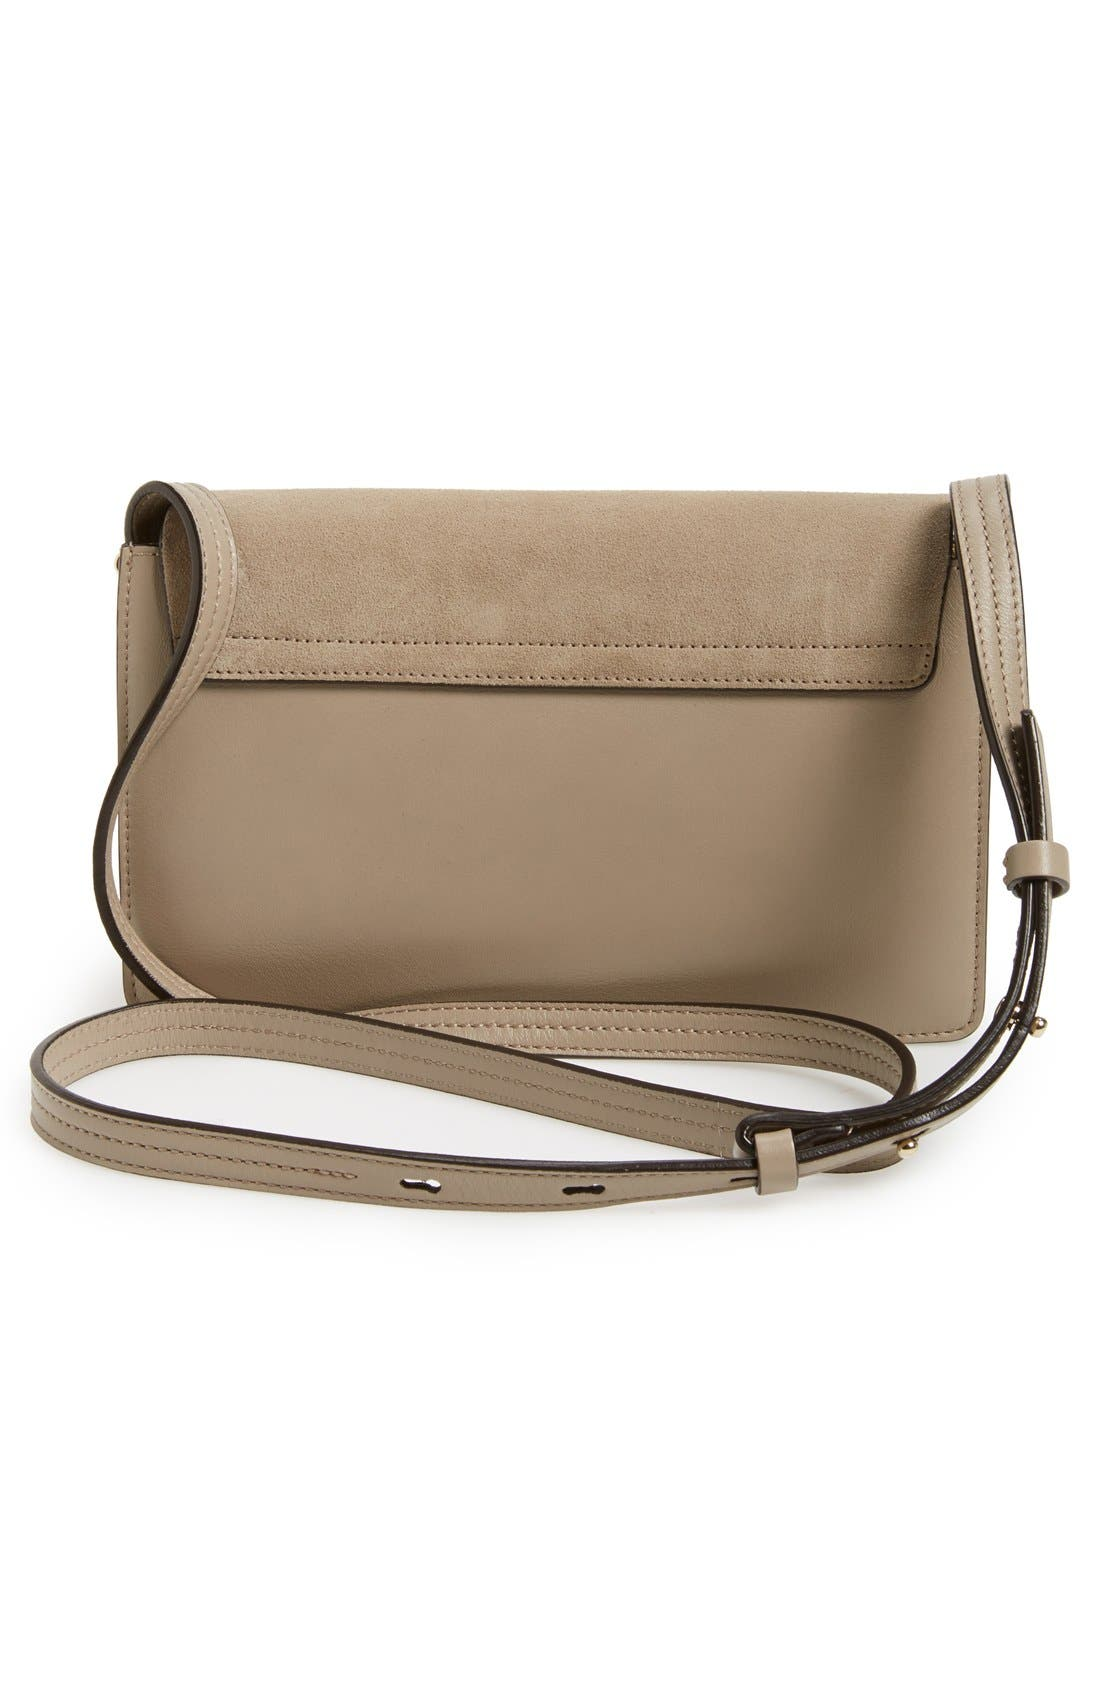 Small Faye Leather Shoulder Bag,                             Alternate thumbnail 4, color,                             MOTTY GREY